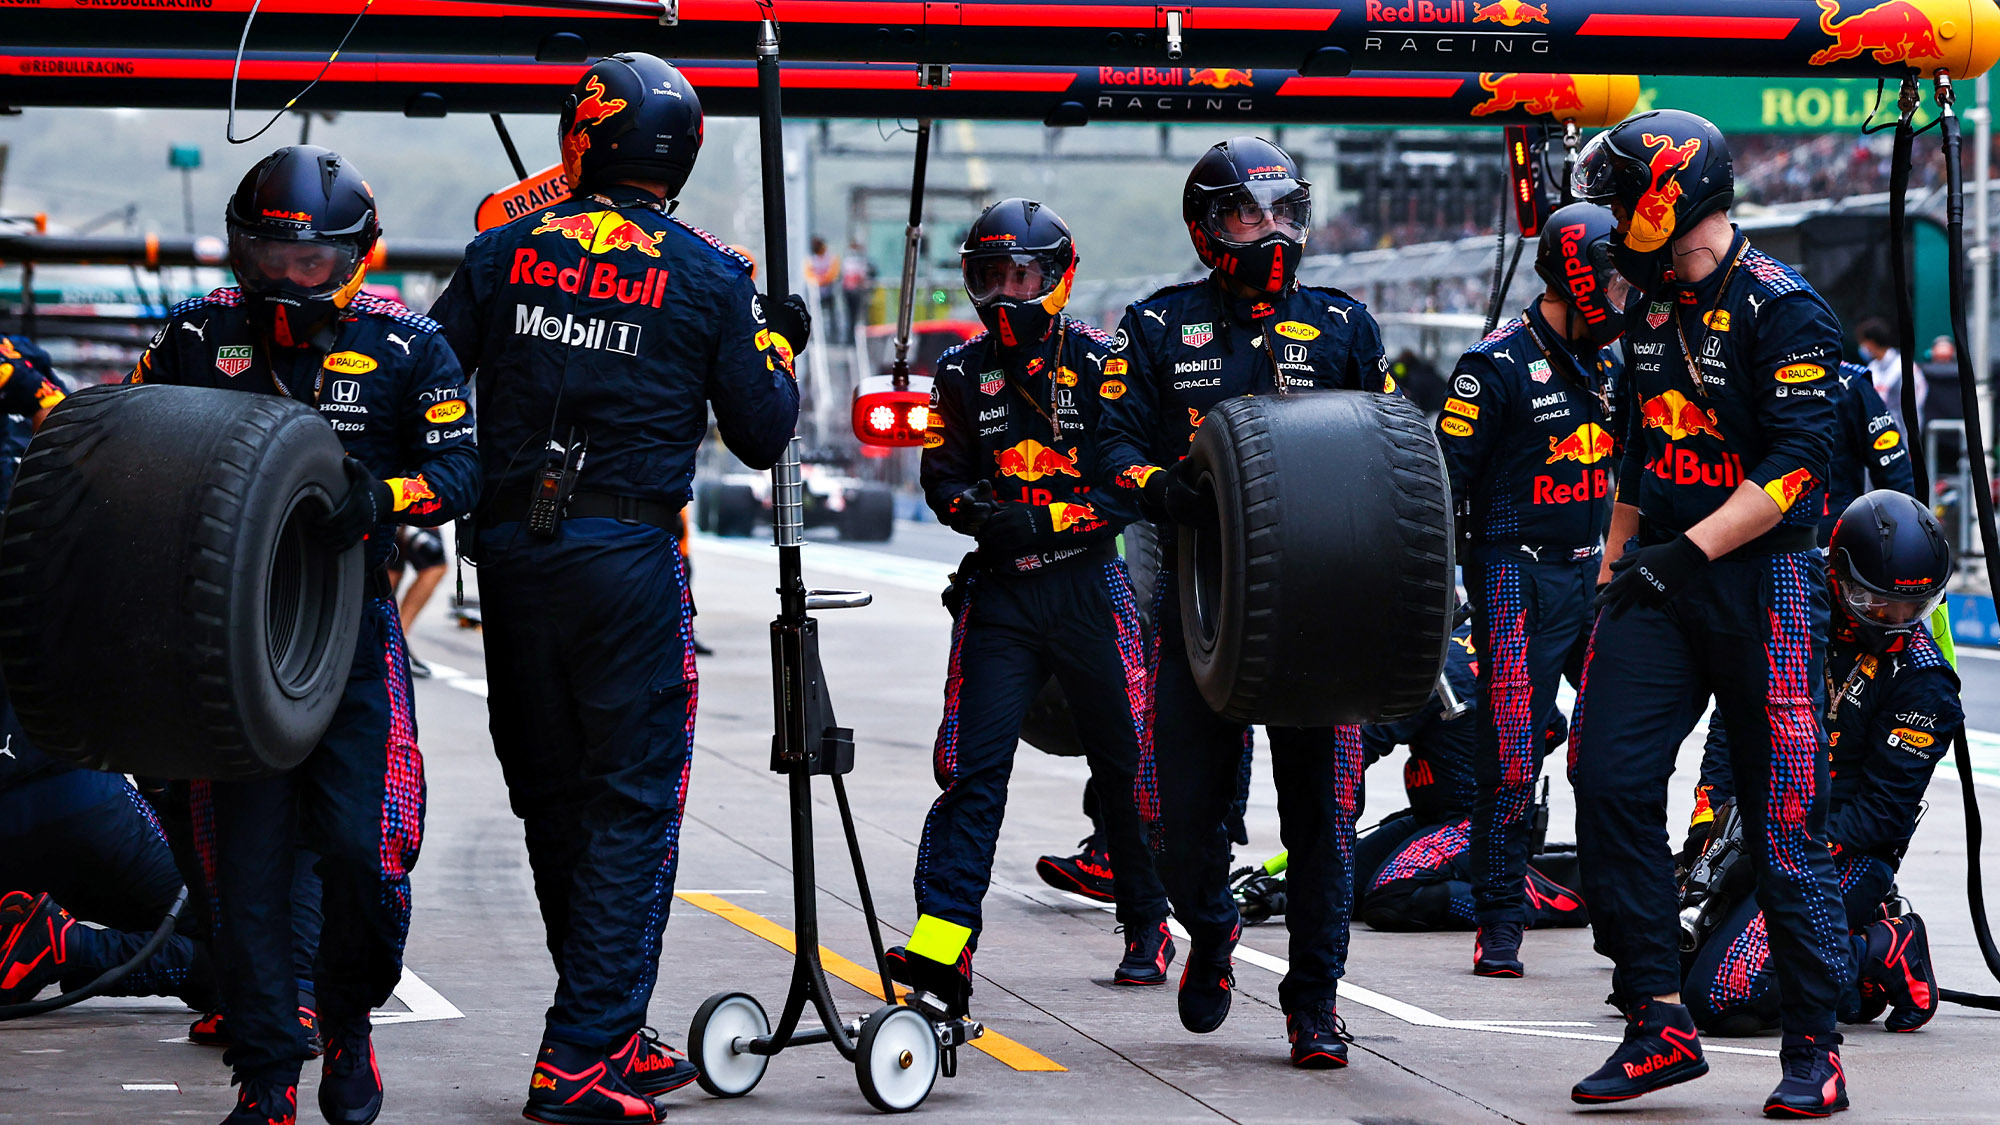 Bald intermediate tyres after Red Bull pitstop